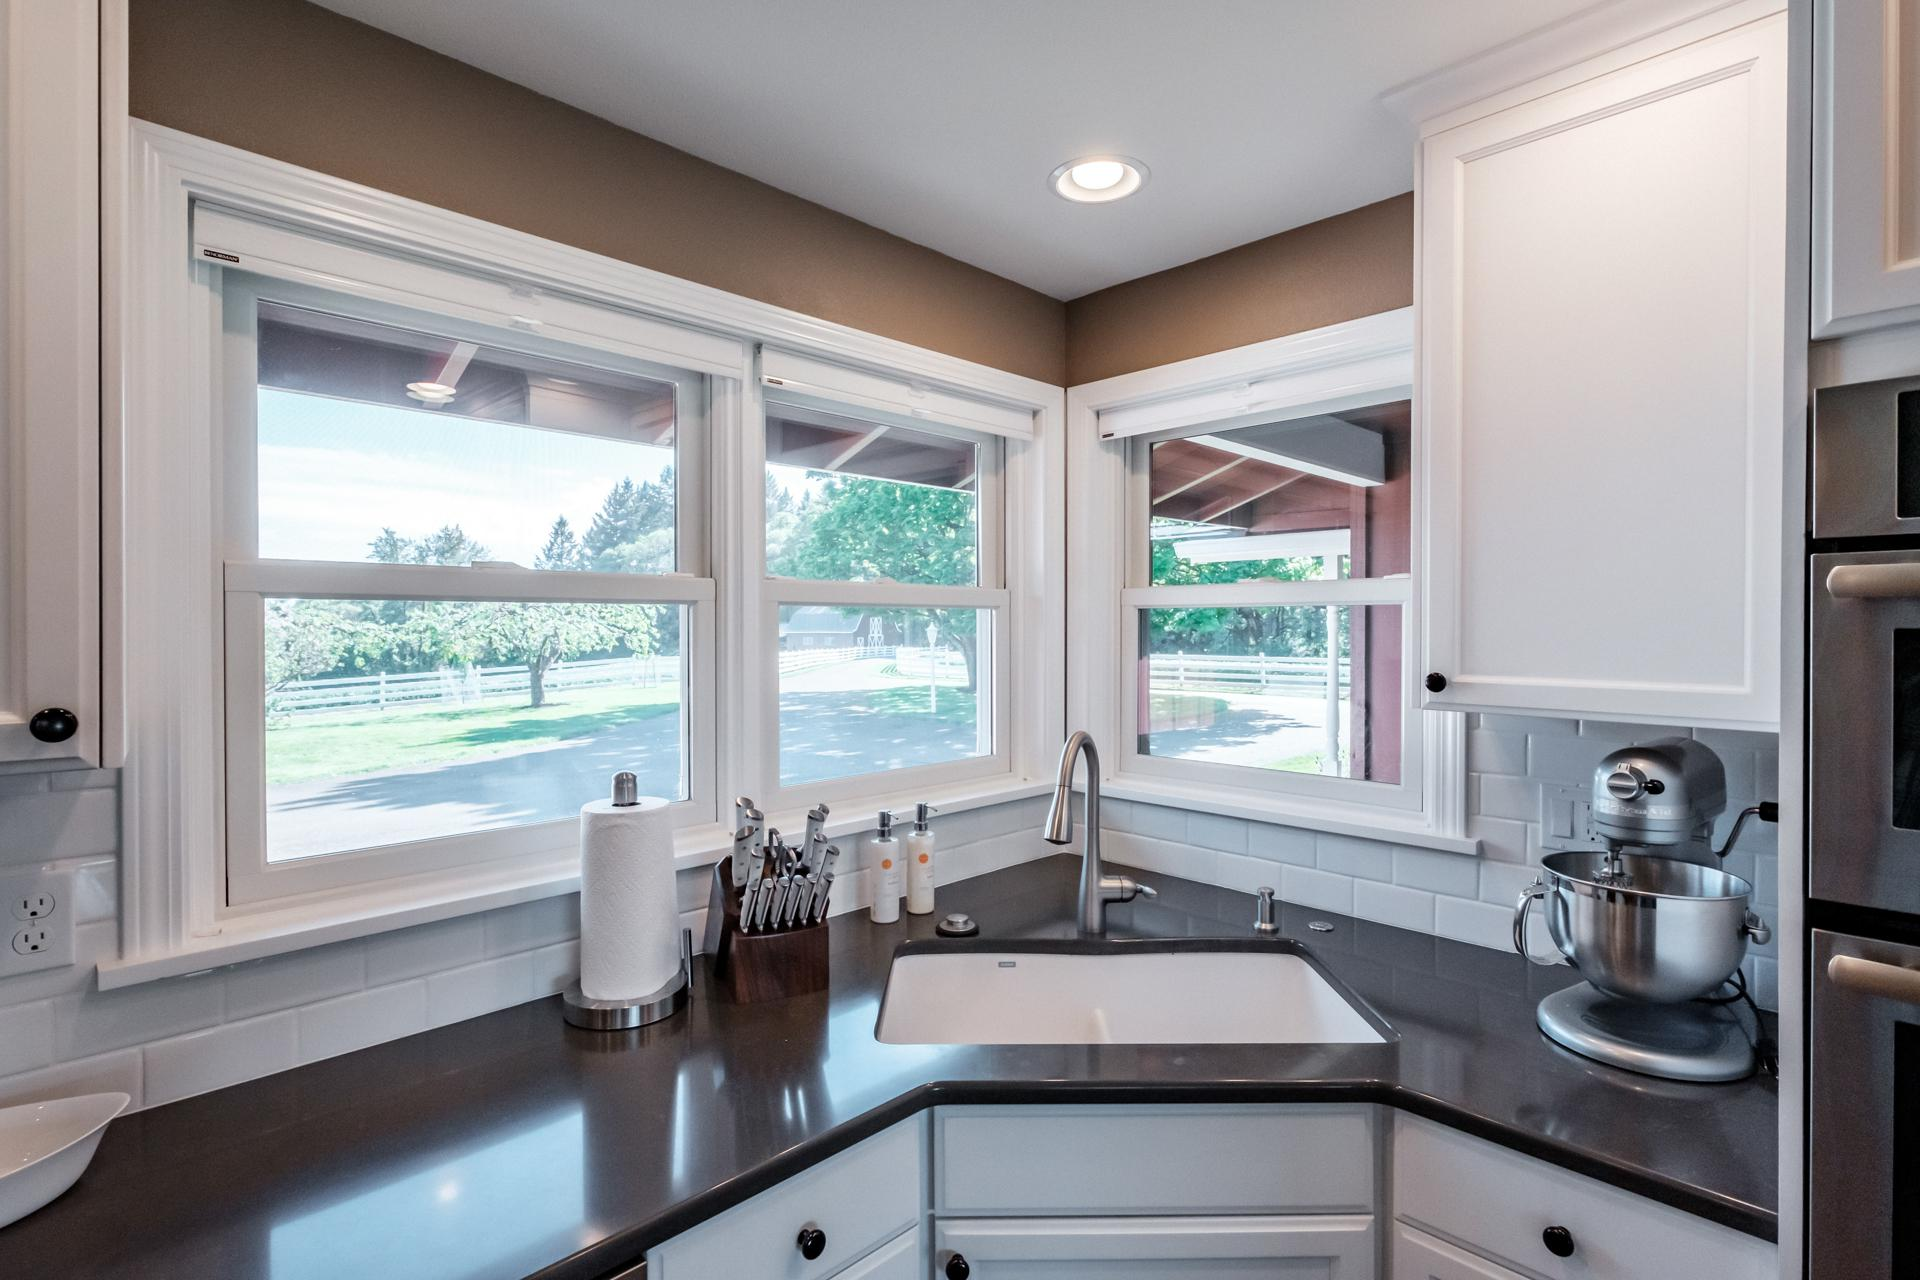 Kitchen sink - Great view of the barn and front of the property.